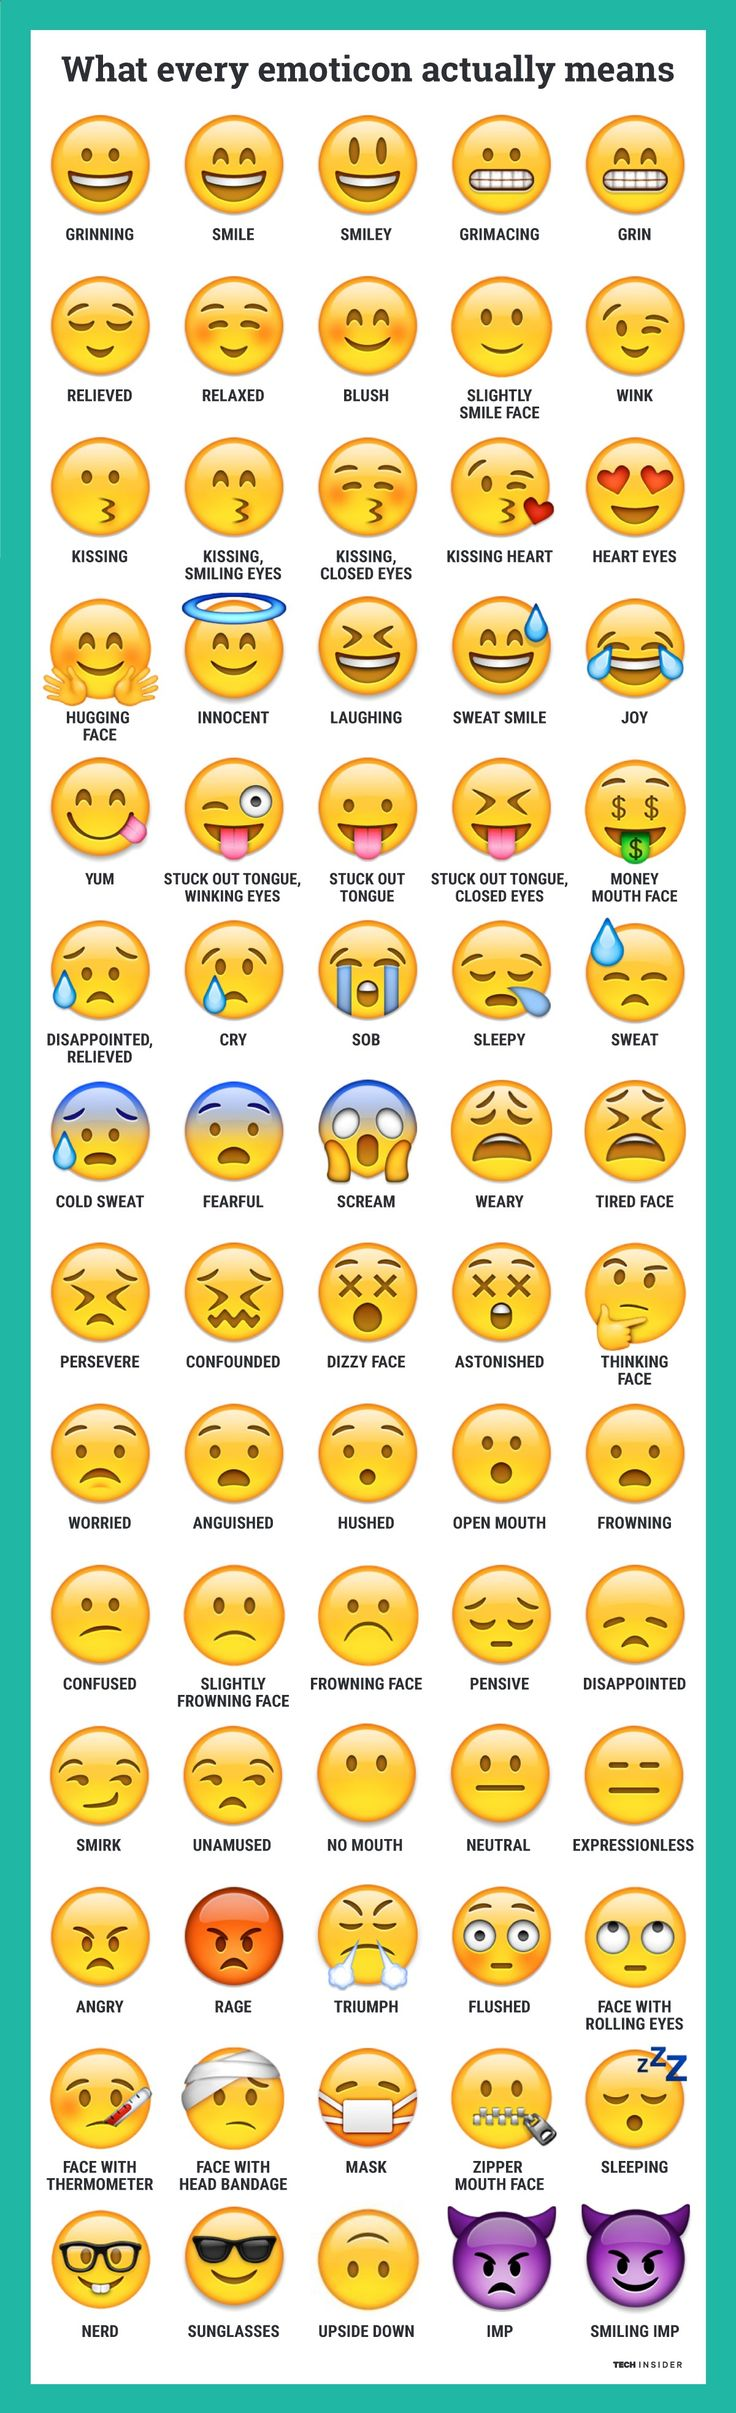 Emoticons are pretty important: Harvard cognitive scientist Steven Pinker says theyre an extremely useful linguistic evolution. The Oxford English Dictionary named crying face the word of the year. Humans collectively send 6 billion emoticons every day. But they dont teach emoticons in school, and some of them are actually hard to understand — at least for some of us.